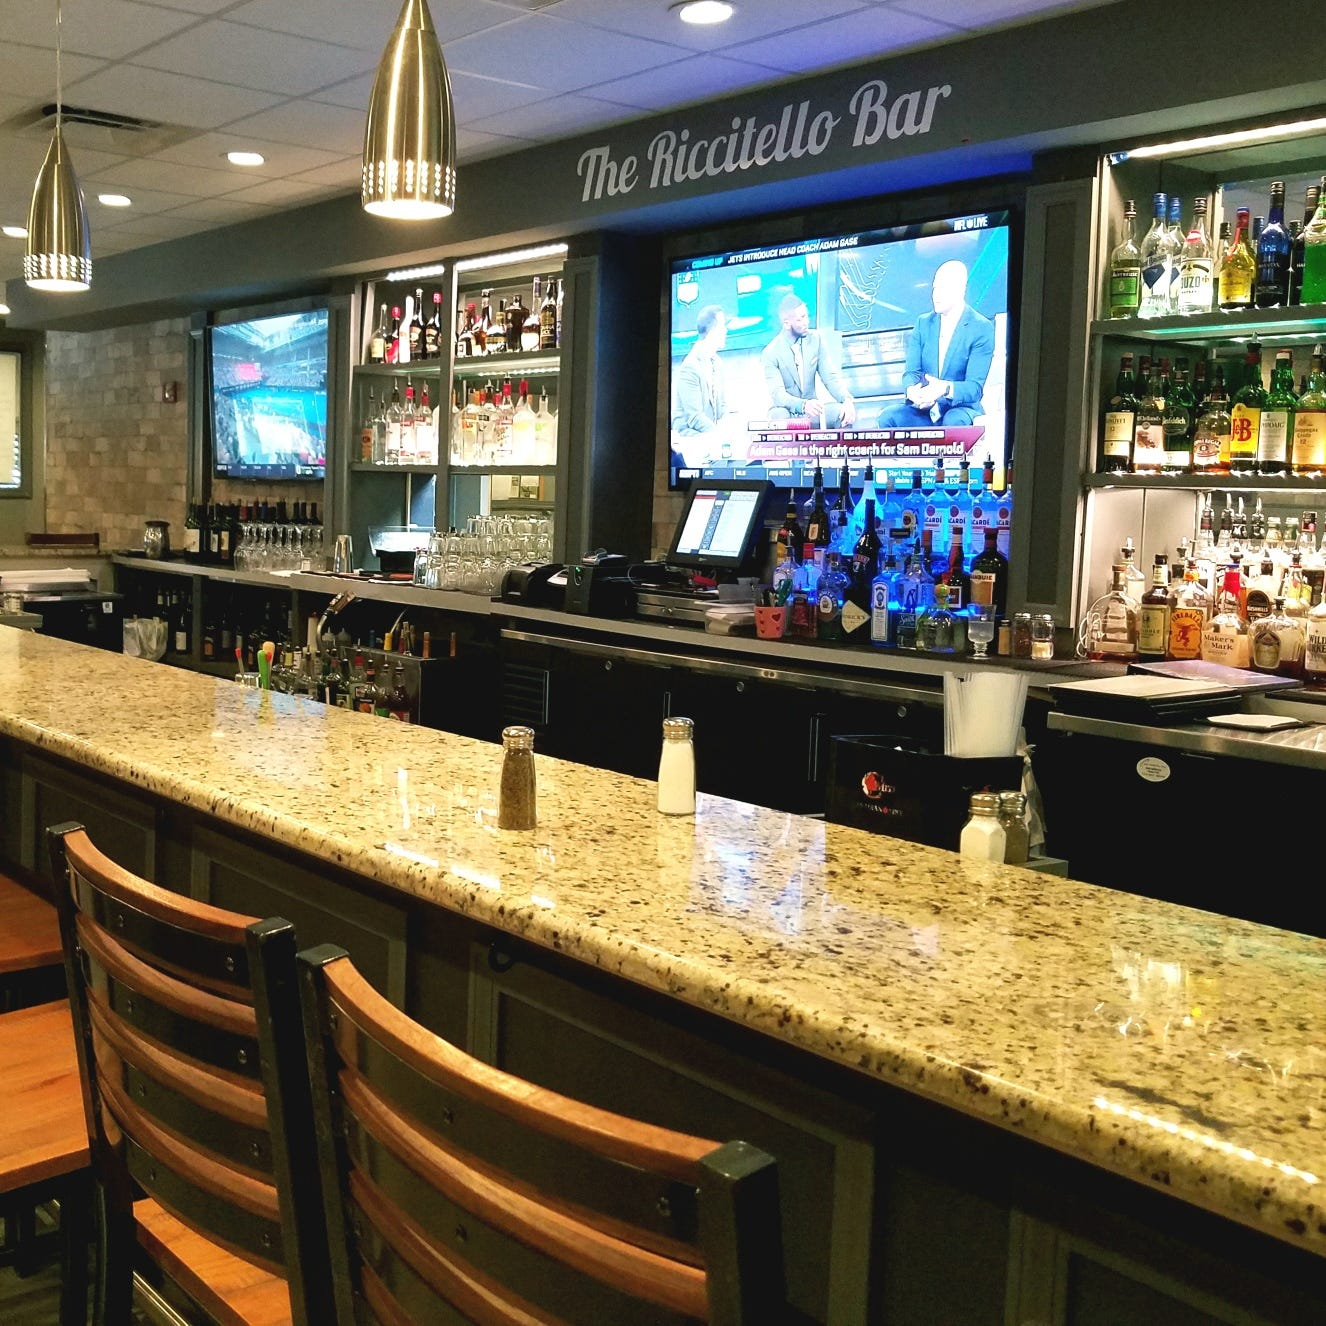 Manero's offshoot Manny's Rebellion offers casual atmosphere with good food